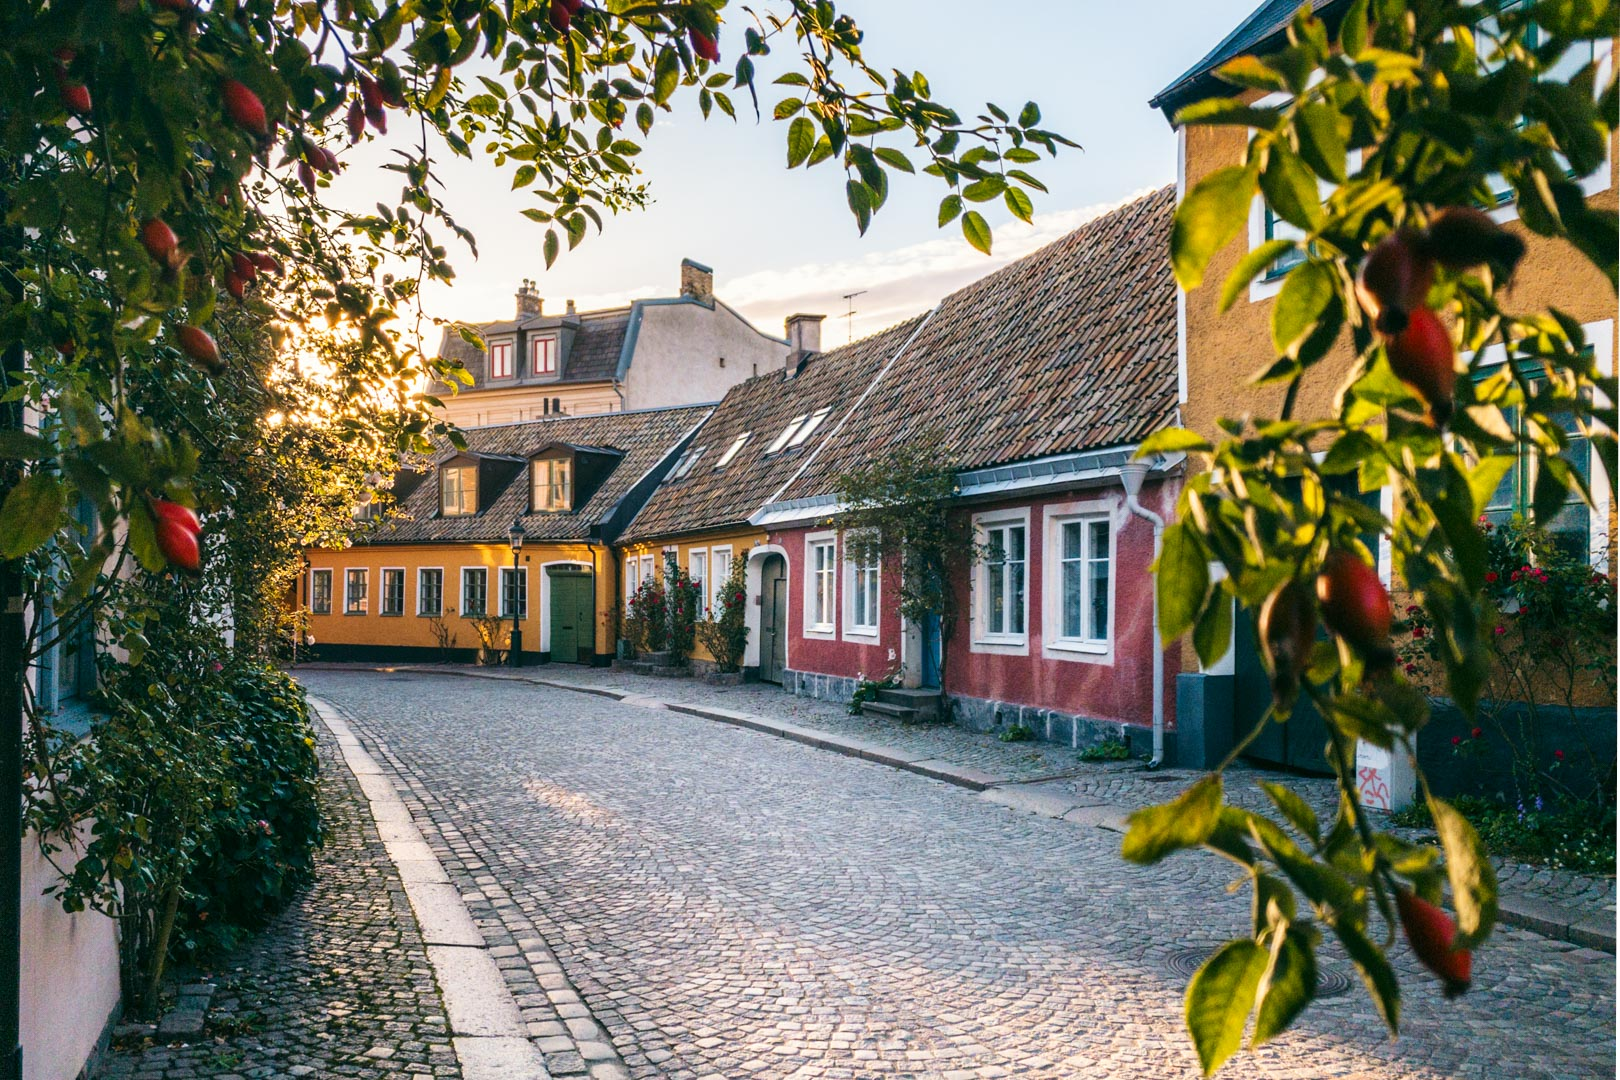 City break in Lund, Sweden: 6 Amazing Things to Do